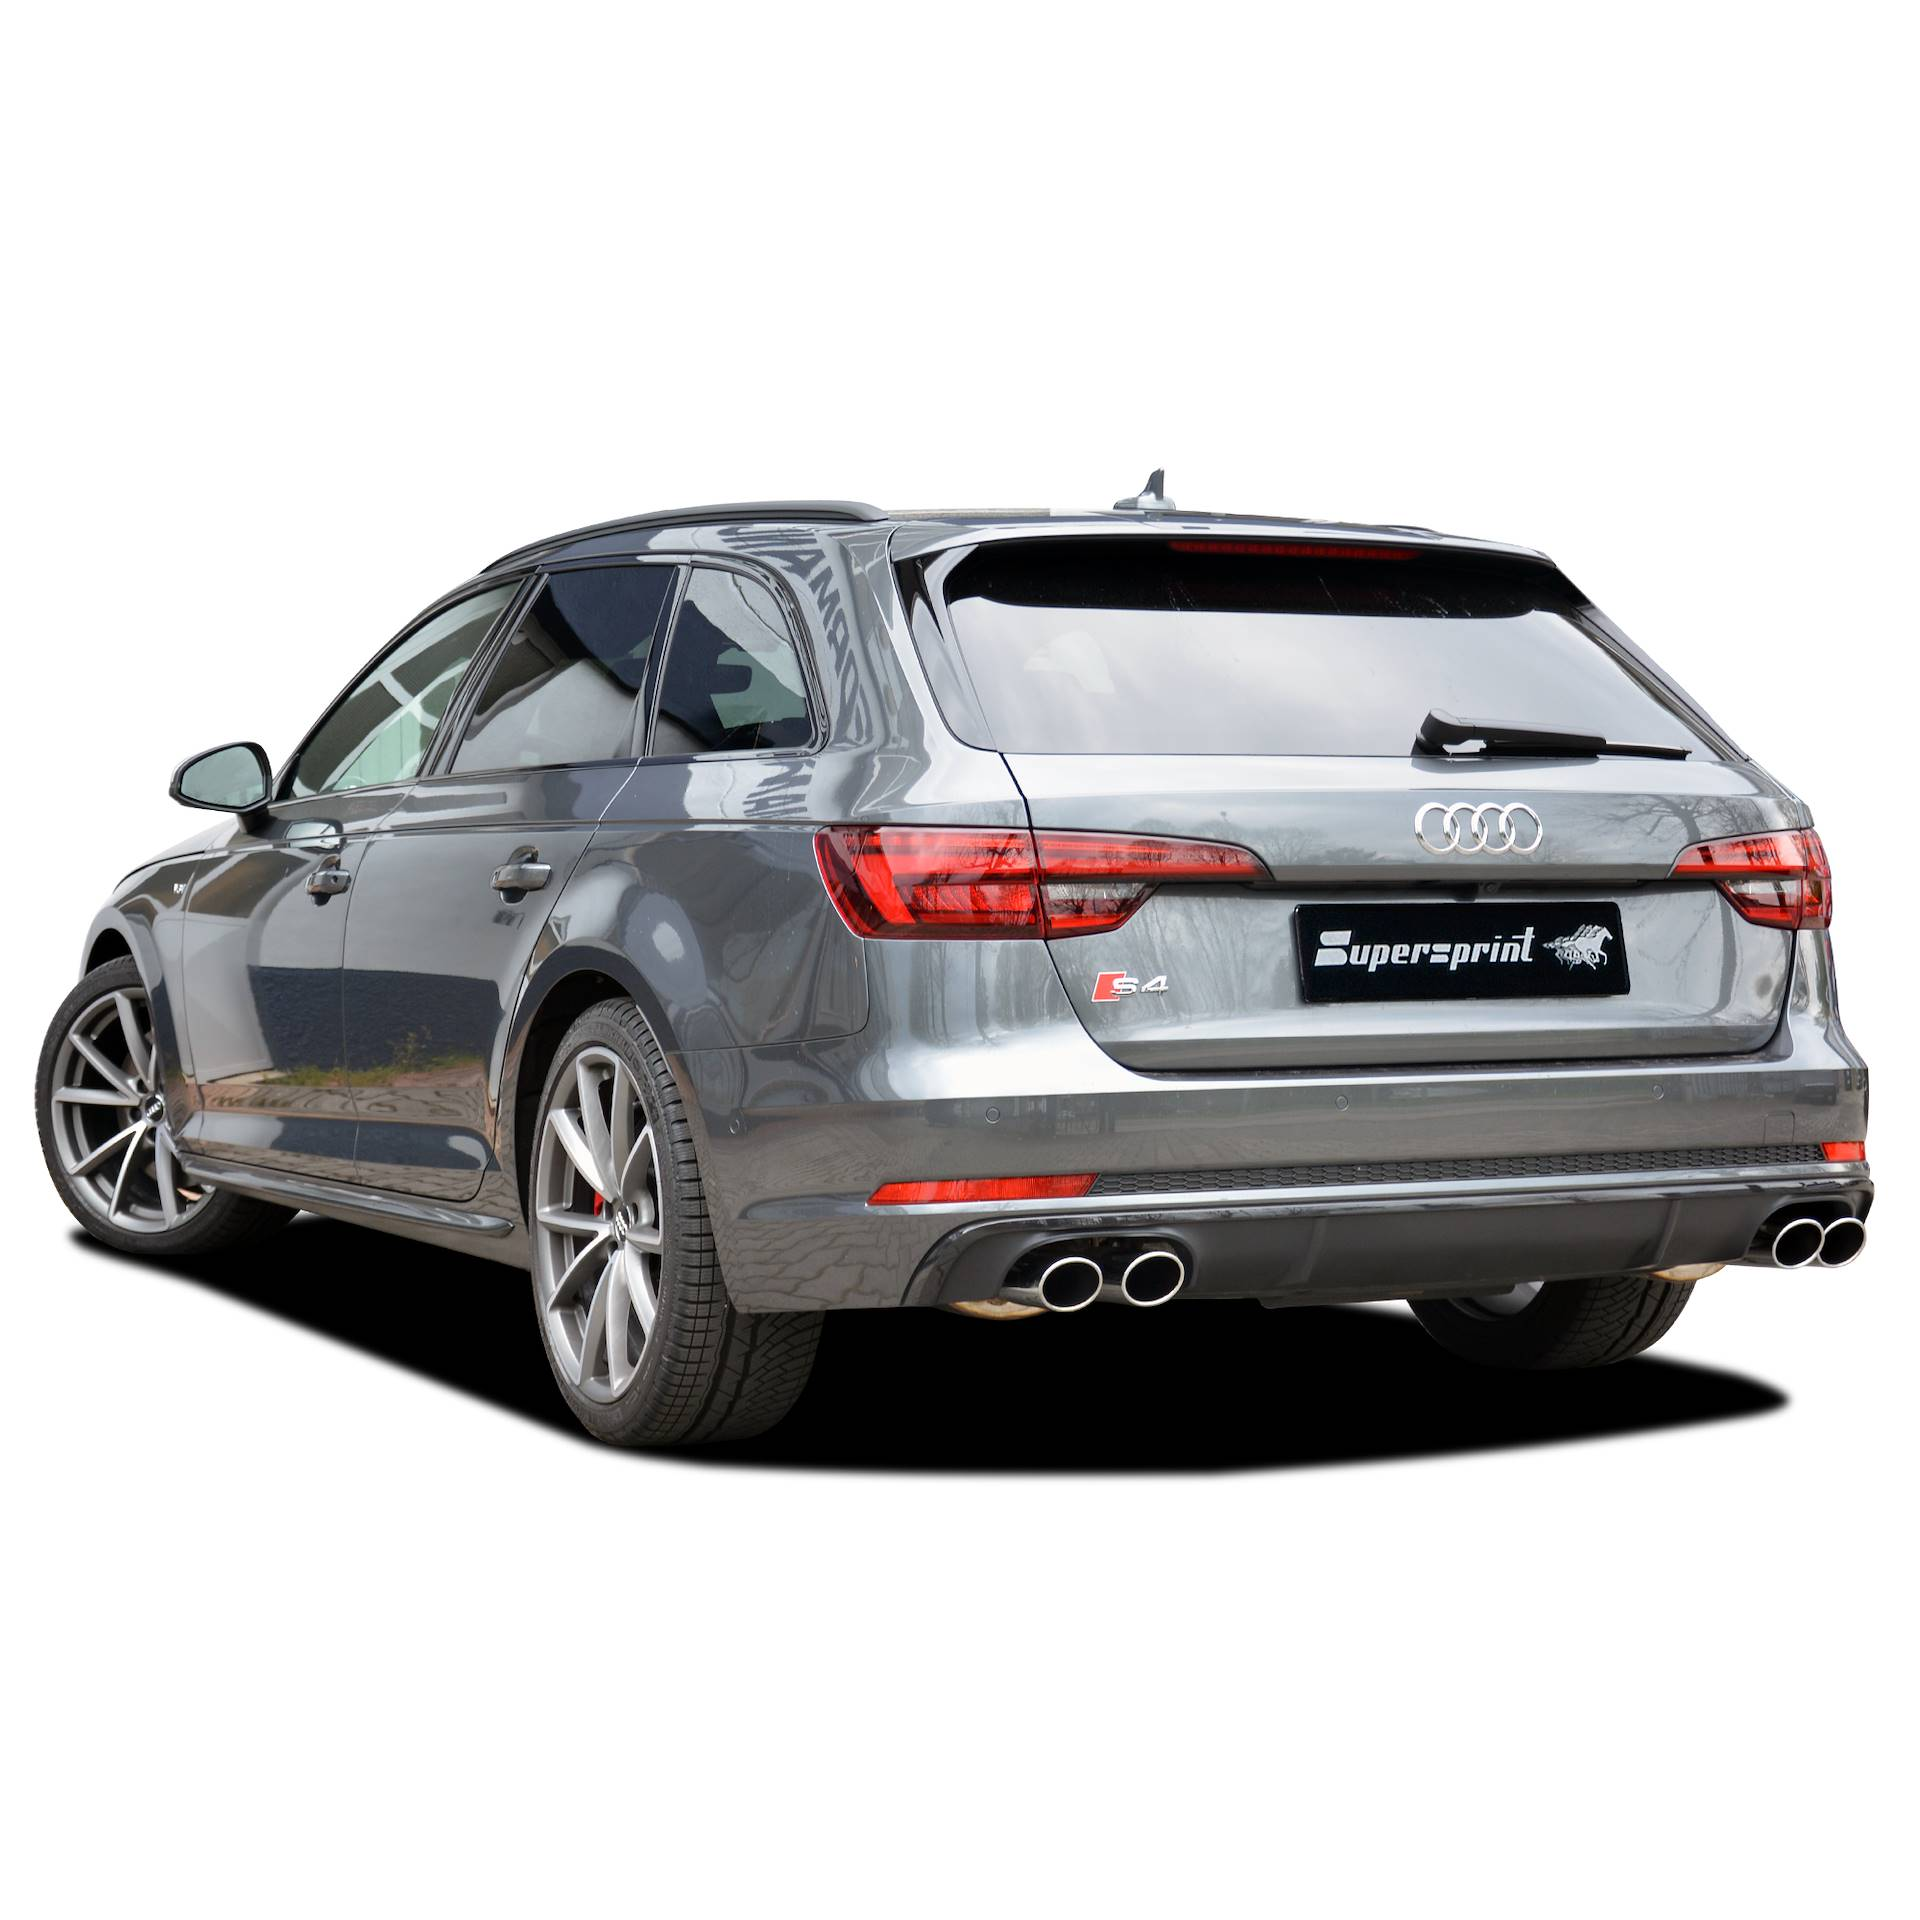 New Supersprint Exhaust With Valves For AUDI S4 B9 Quattro